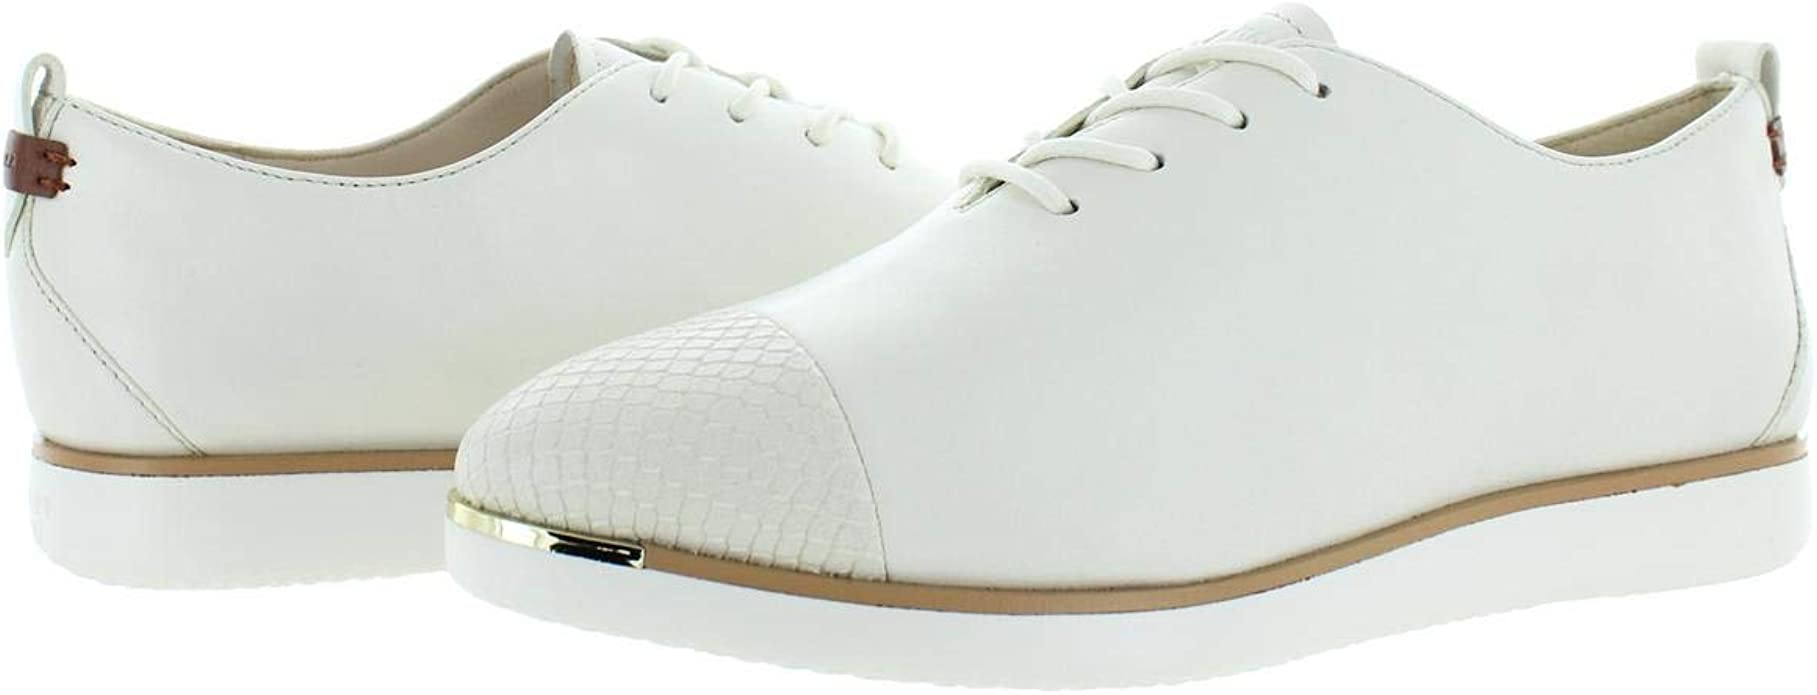 Cole Haan Women's Grand Ambition Lace